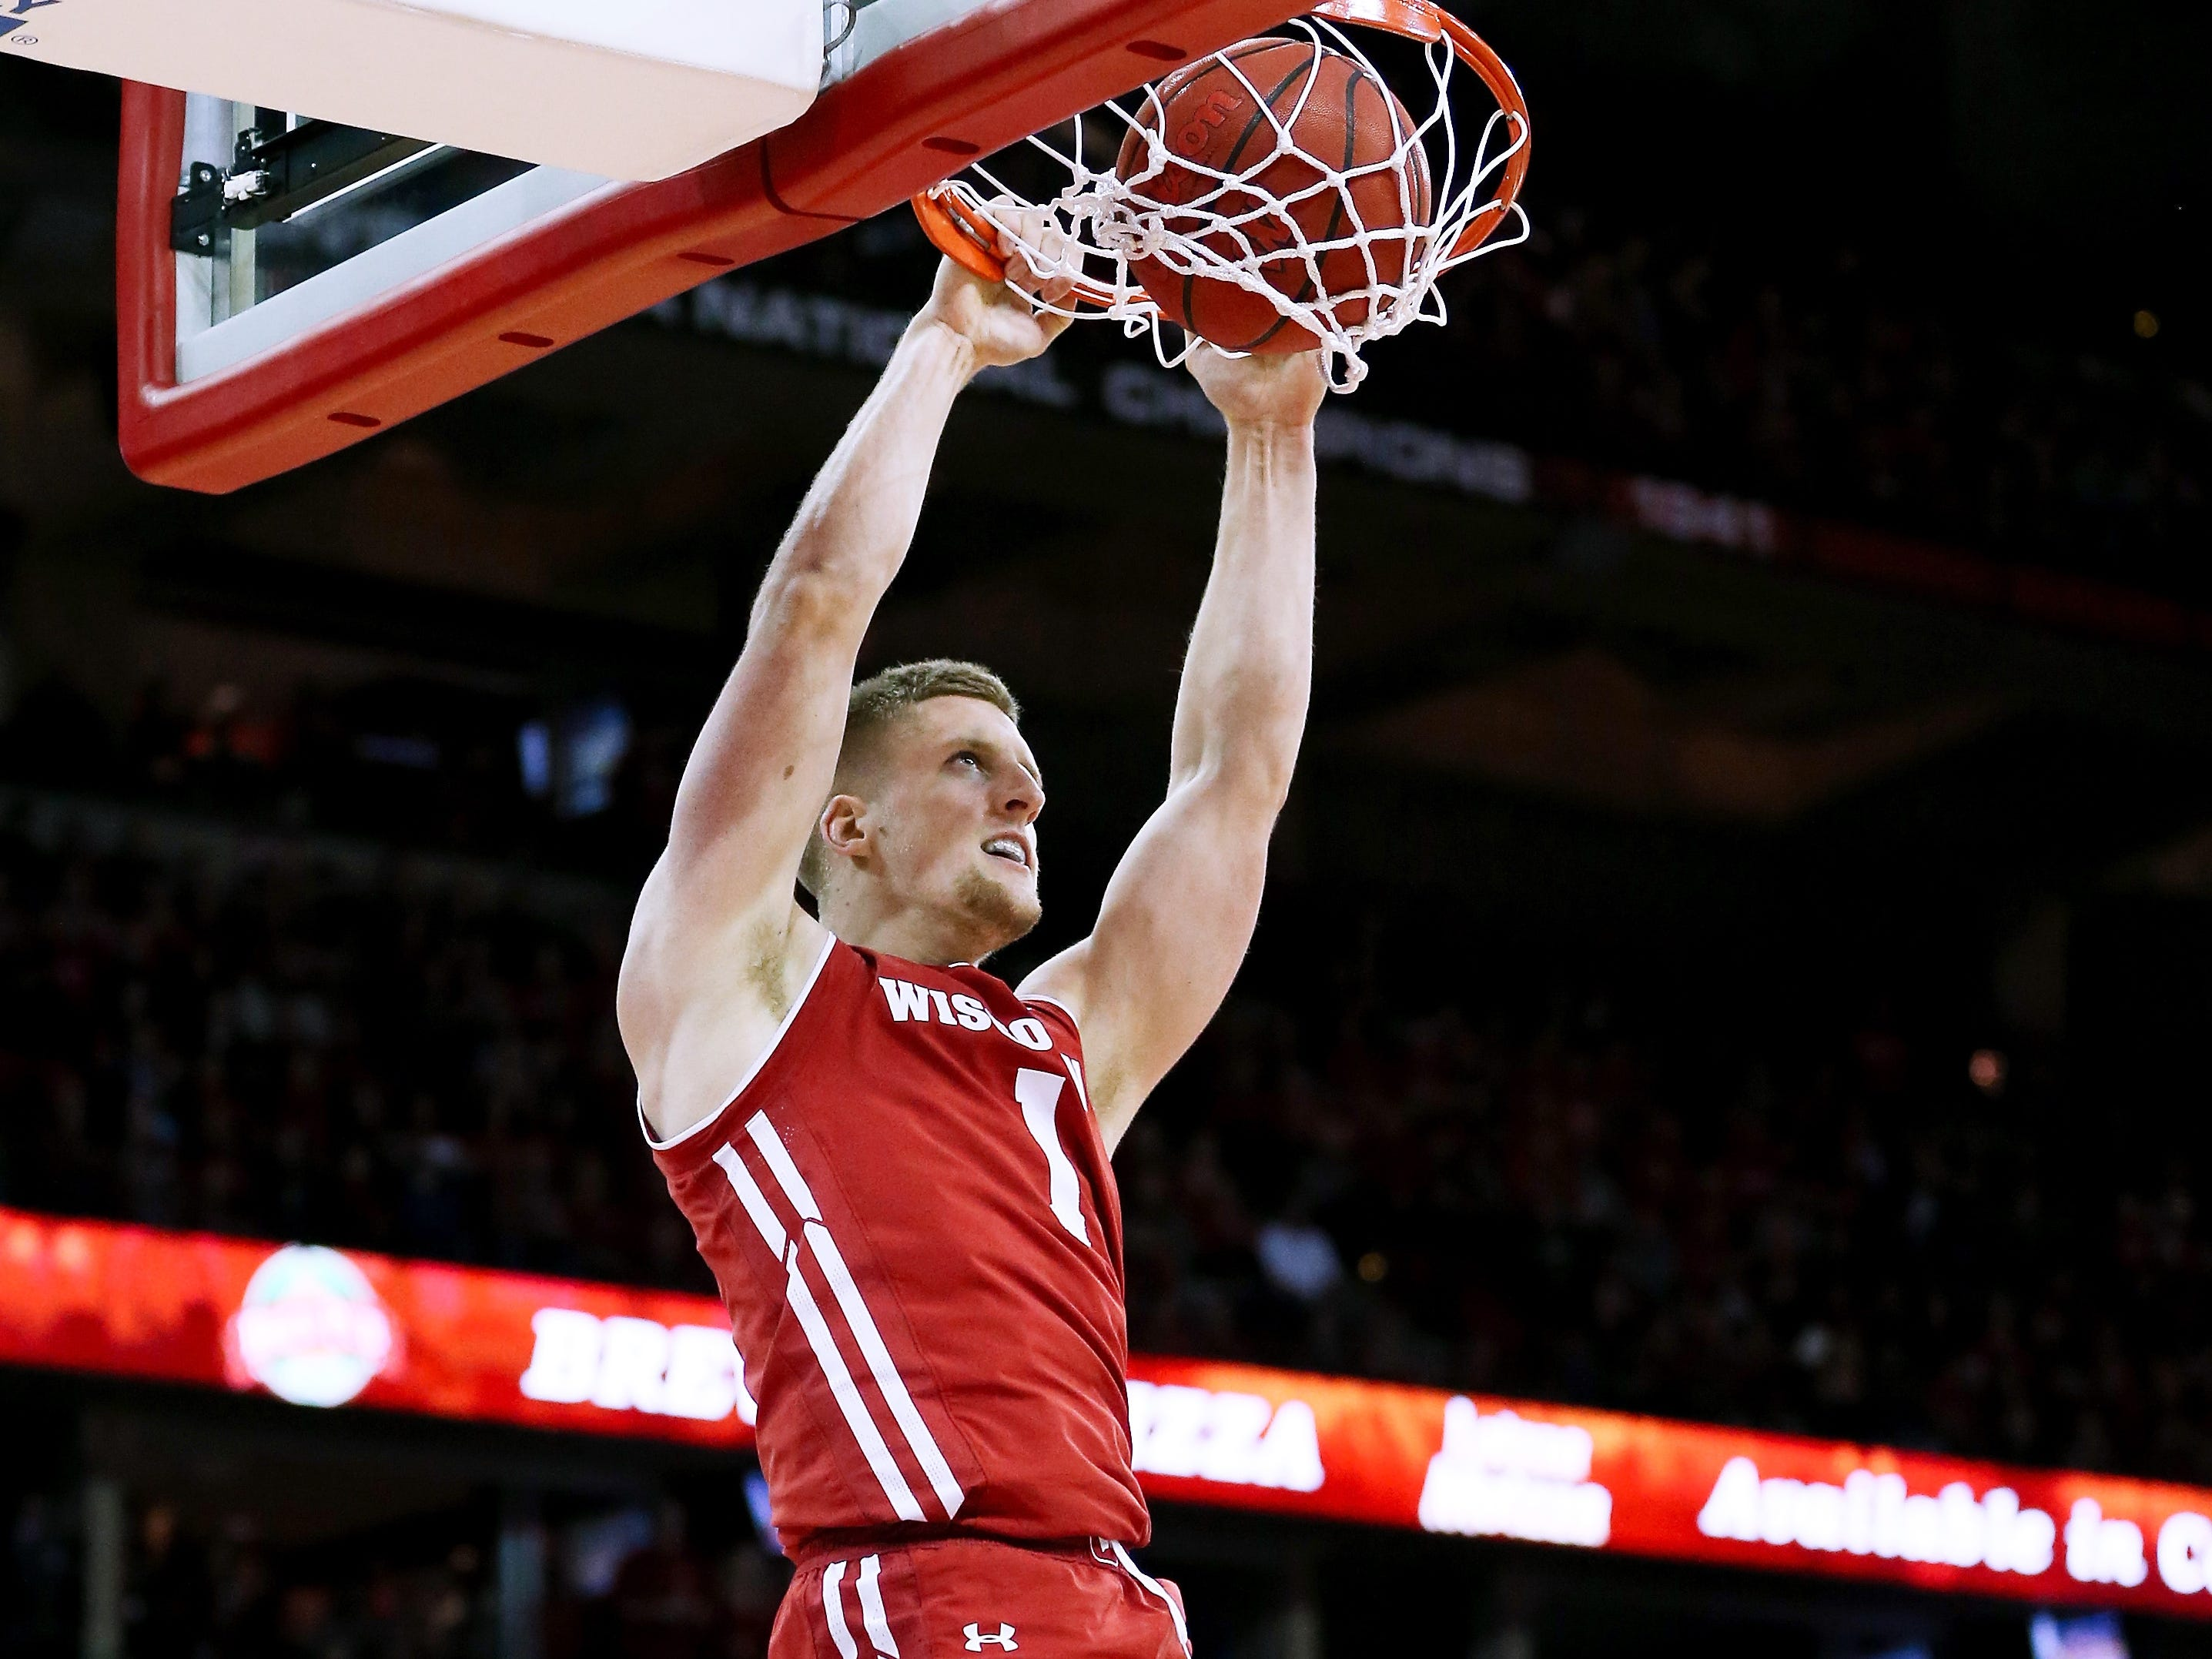 Wisconsin's Brevin Pritzl  dunks the ball in the first half.